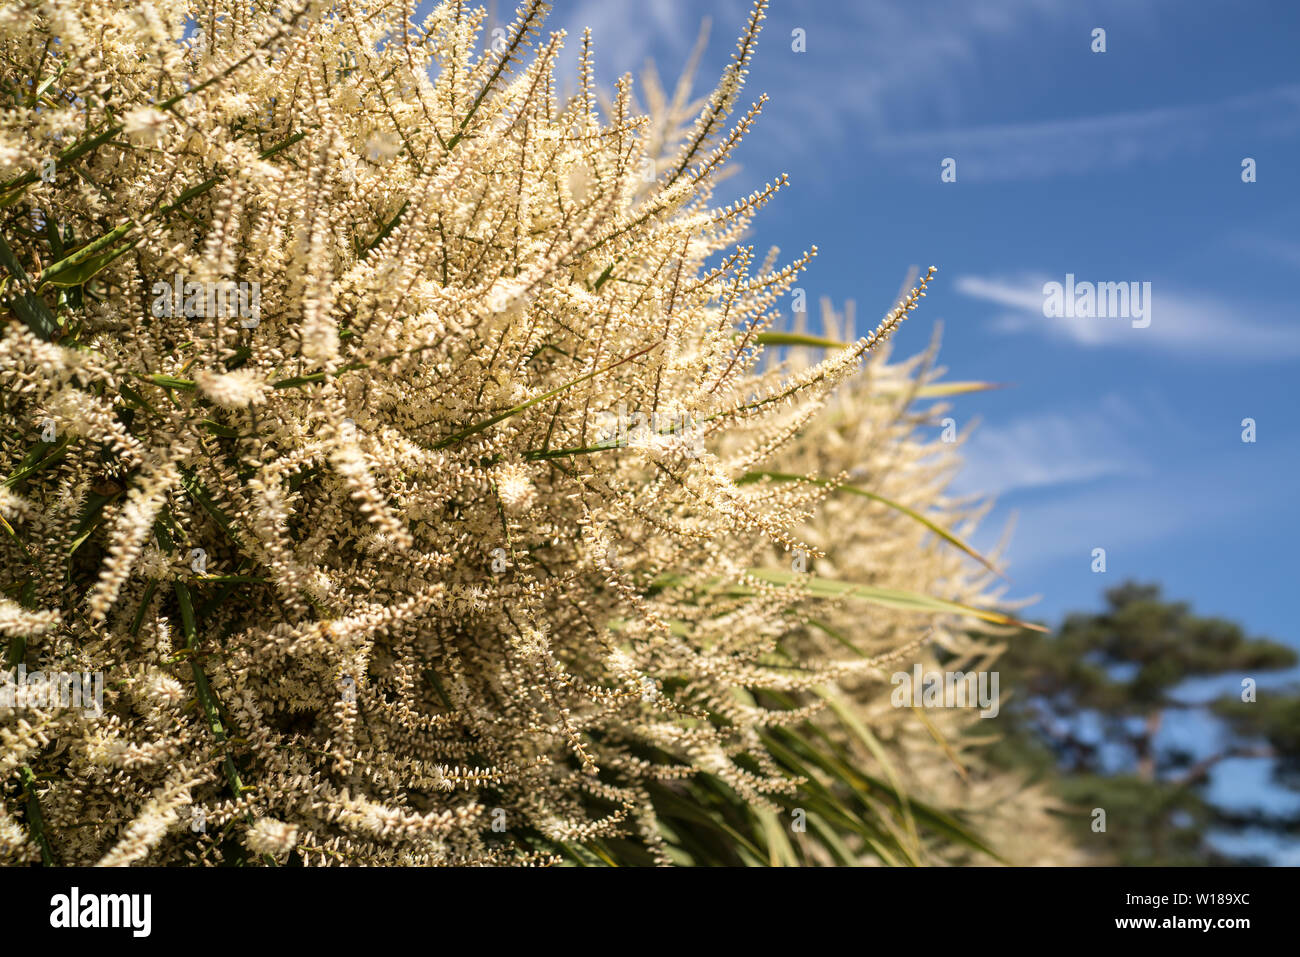 Cordyline Australis Flowering High Resolution Stock Photography And Images Alamy